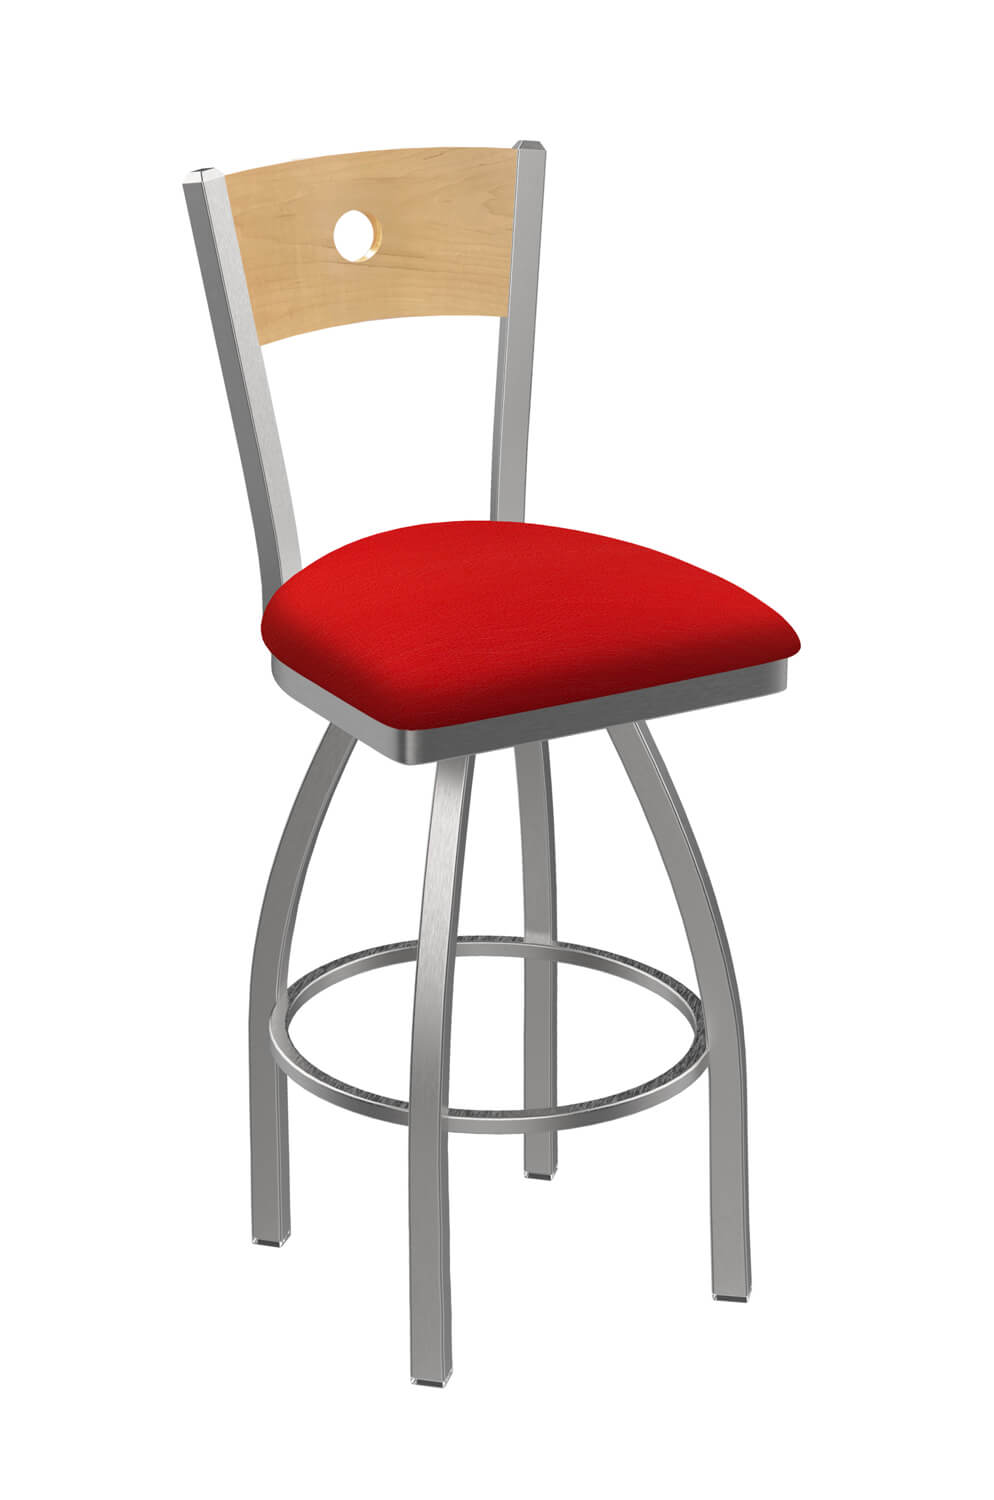 Pleasing Voltaire Swivel Stool 830 Alphanode Cool Chair Designs And Ideas Alphanodeonline